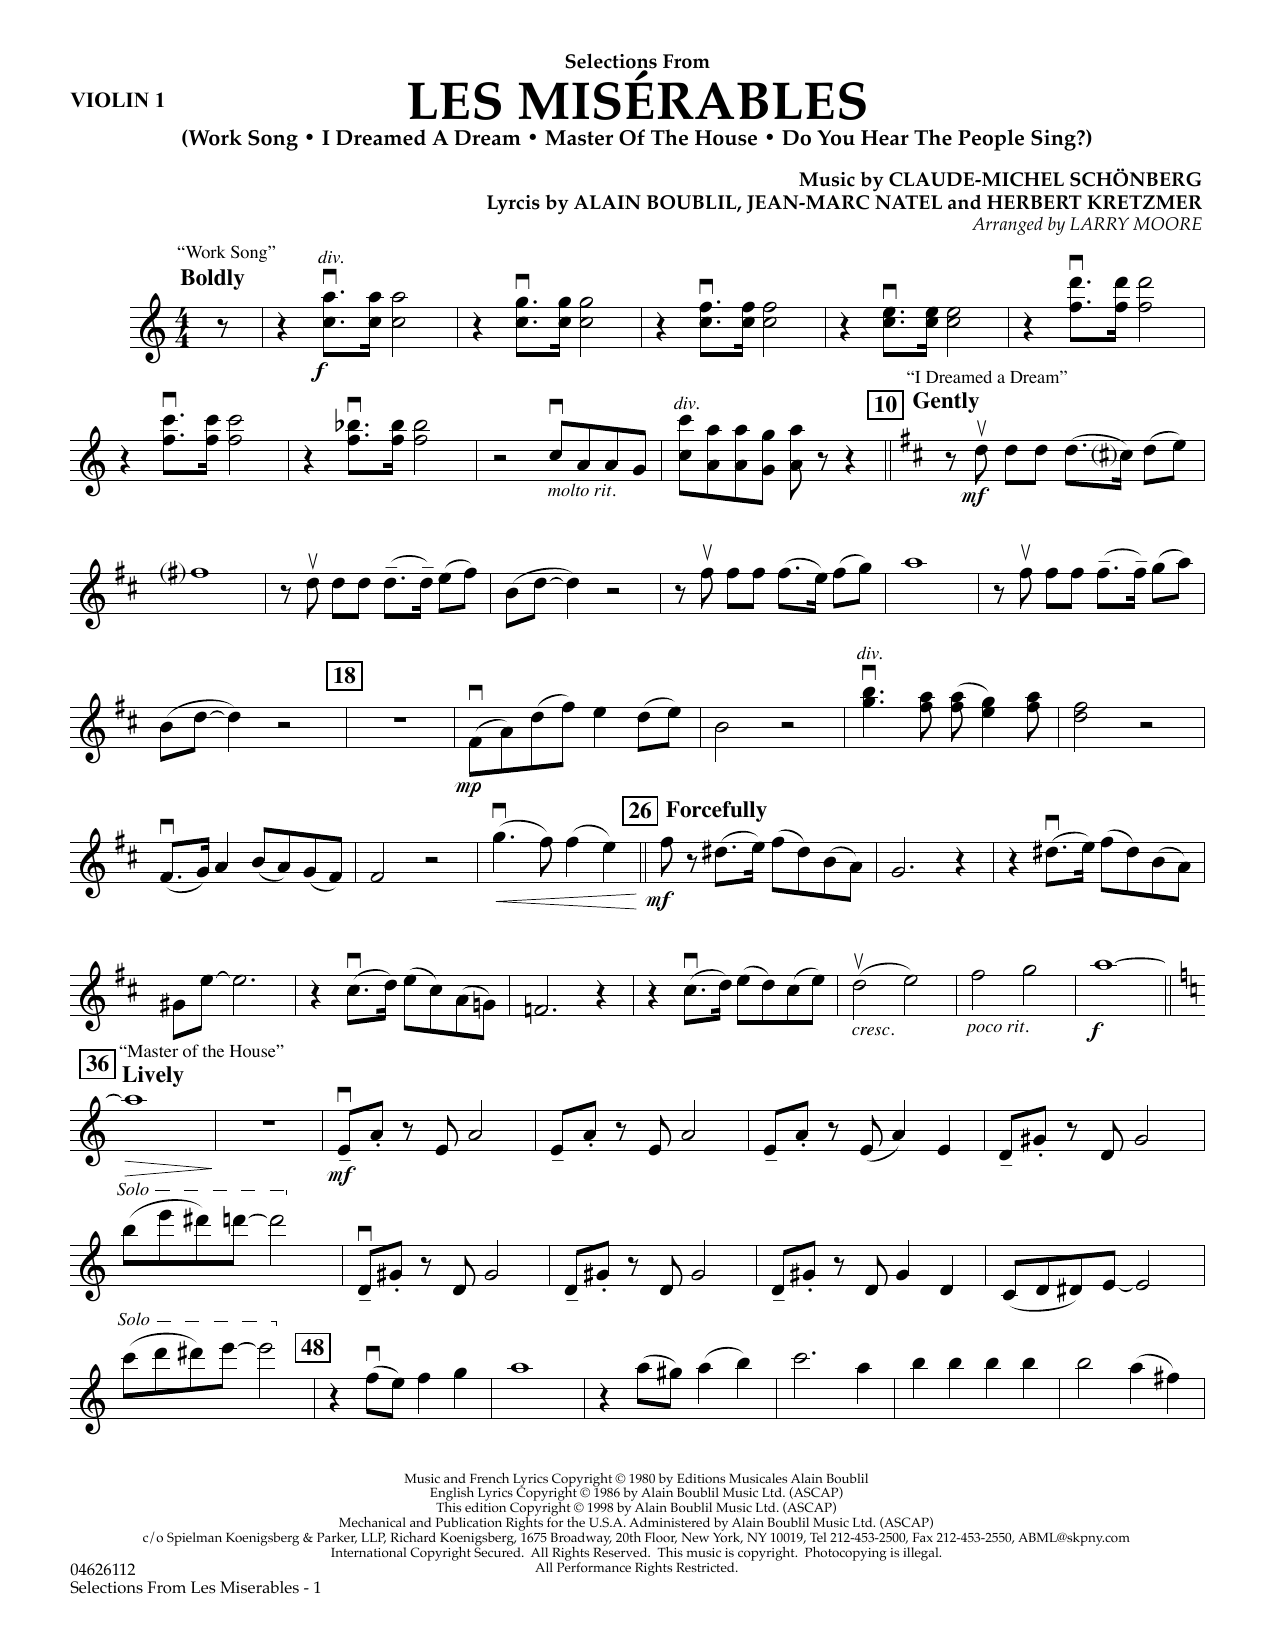 Selections from Les Misérables (arr. Larry Moore) - Violin 1 (Orchestra)